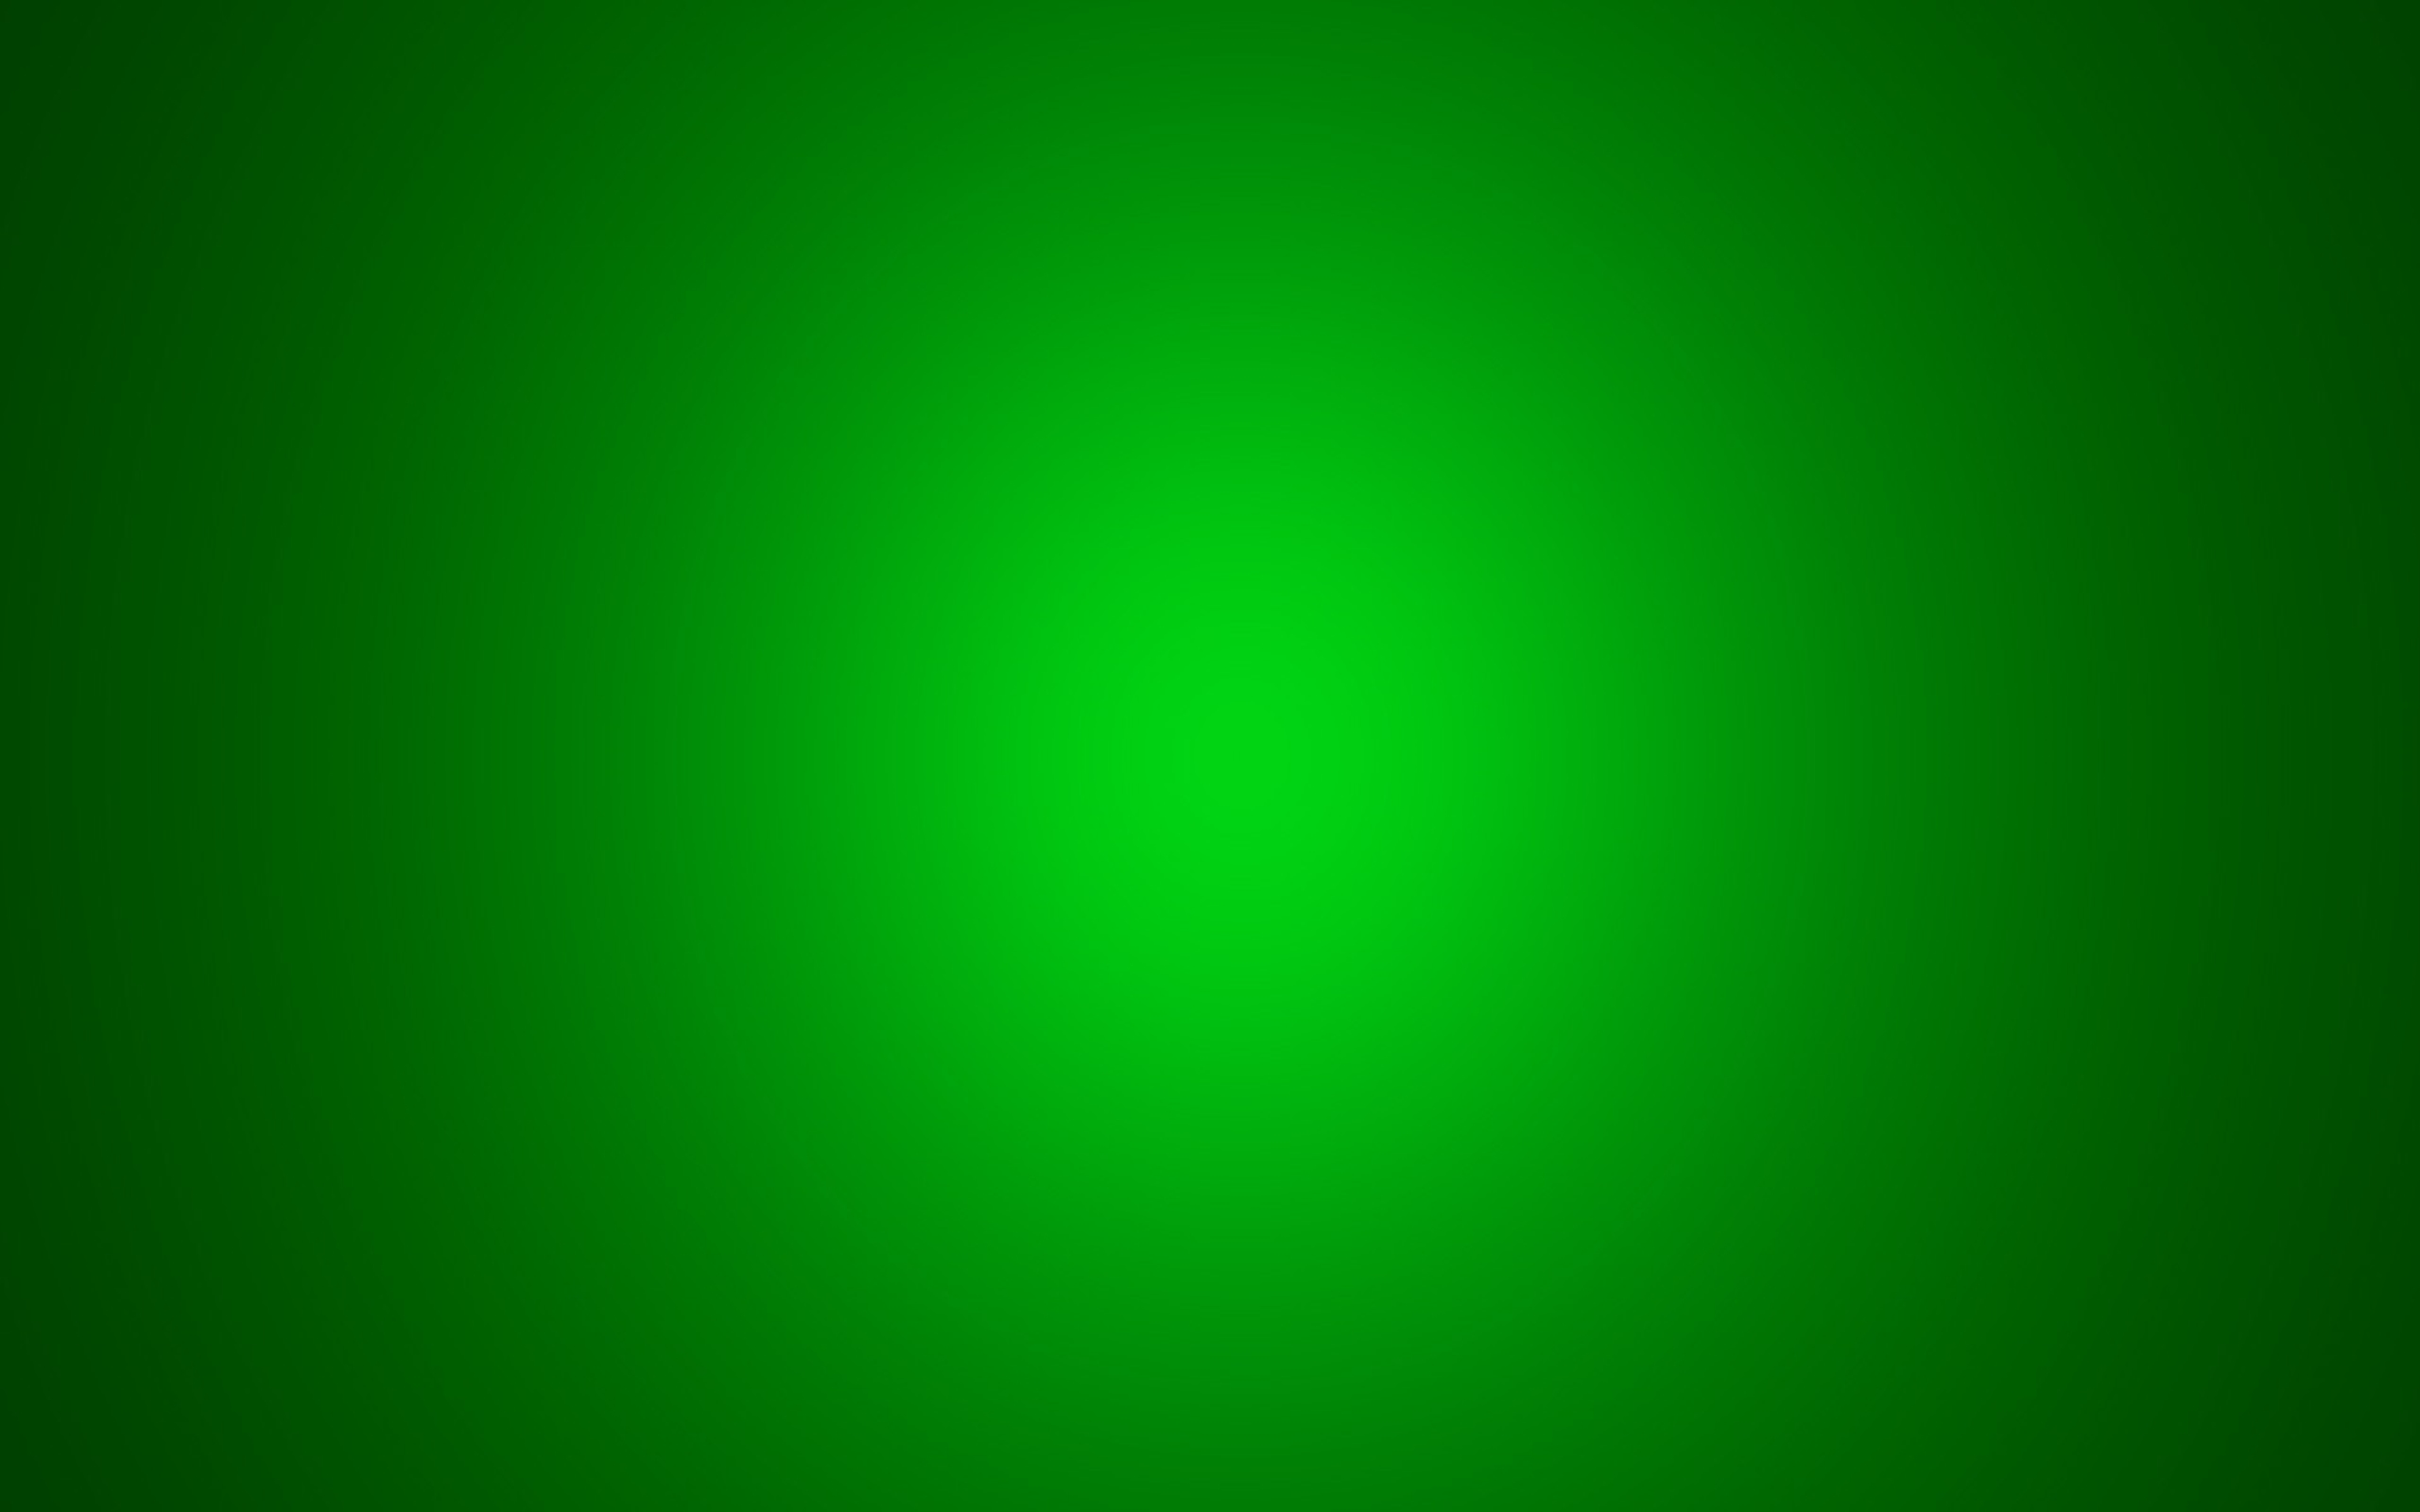 30 Green Background Images HD Creative Green Wallpapers 2560x1600